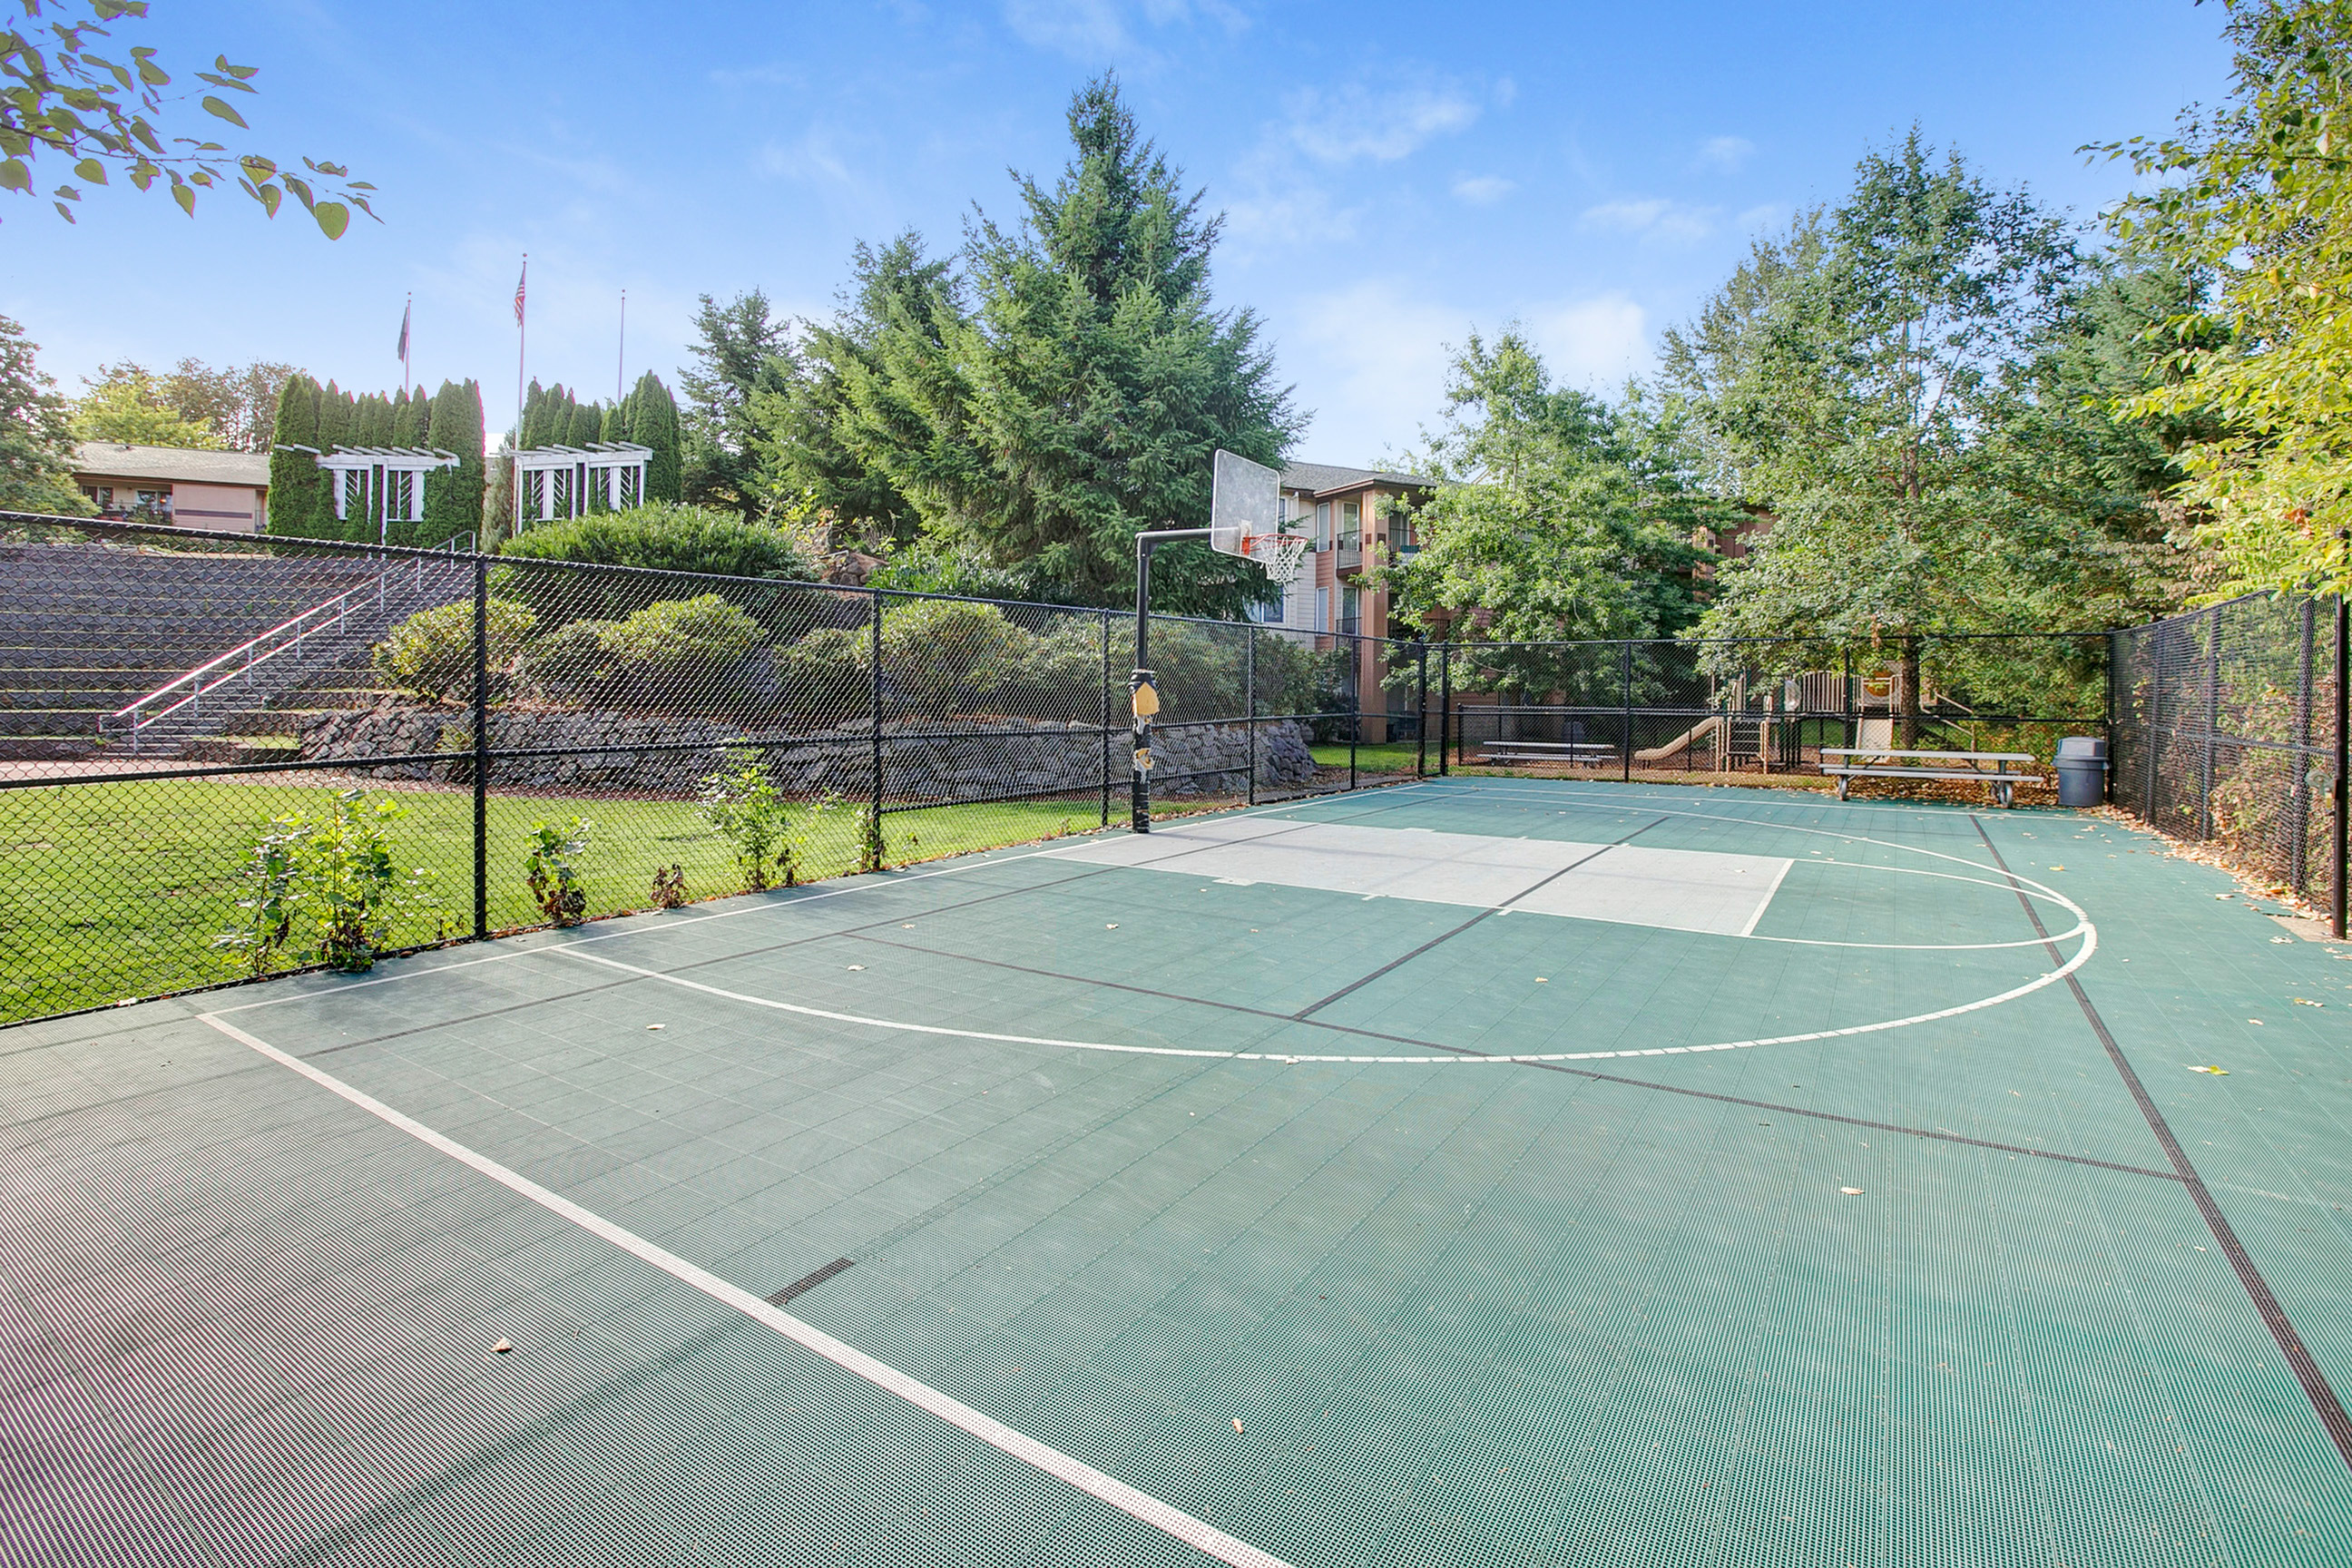 Image of Outdoor Sport Court for Scott Mountain